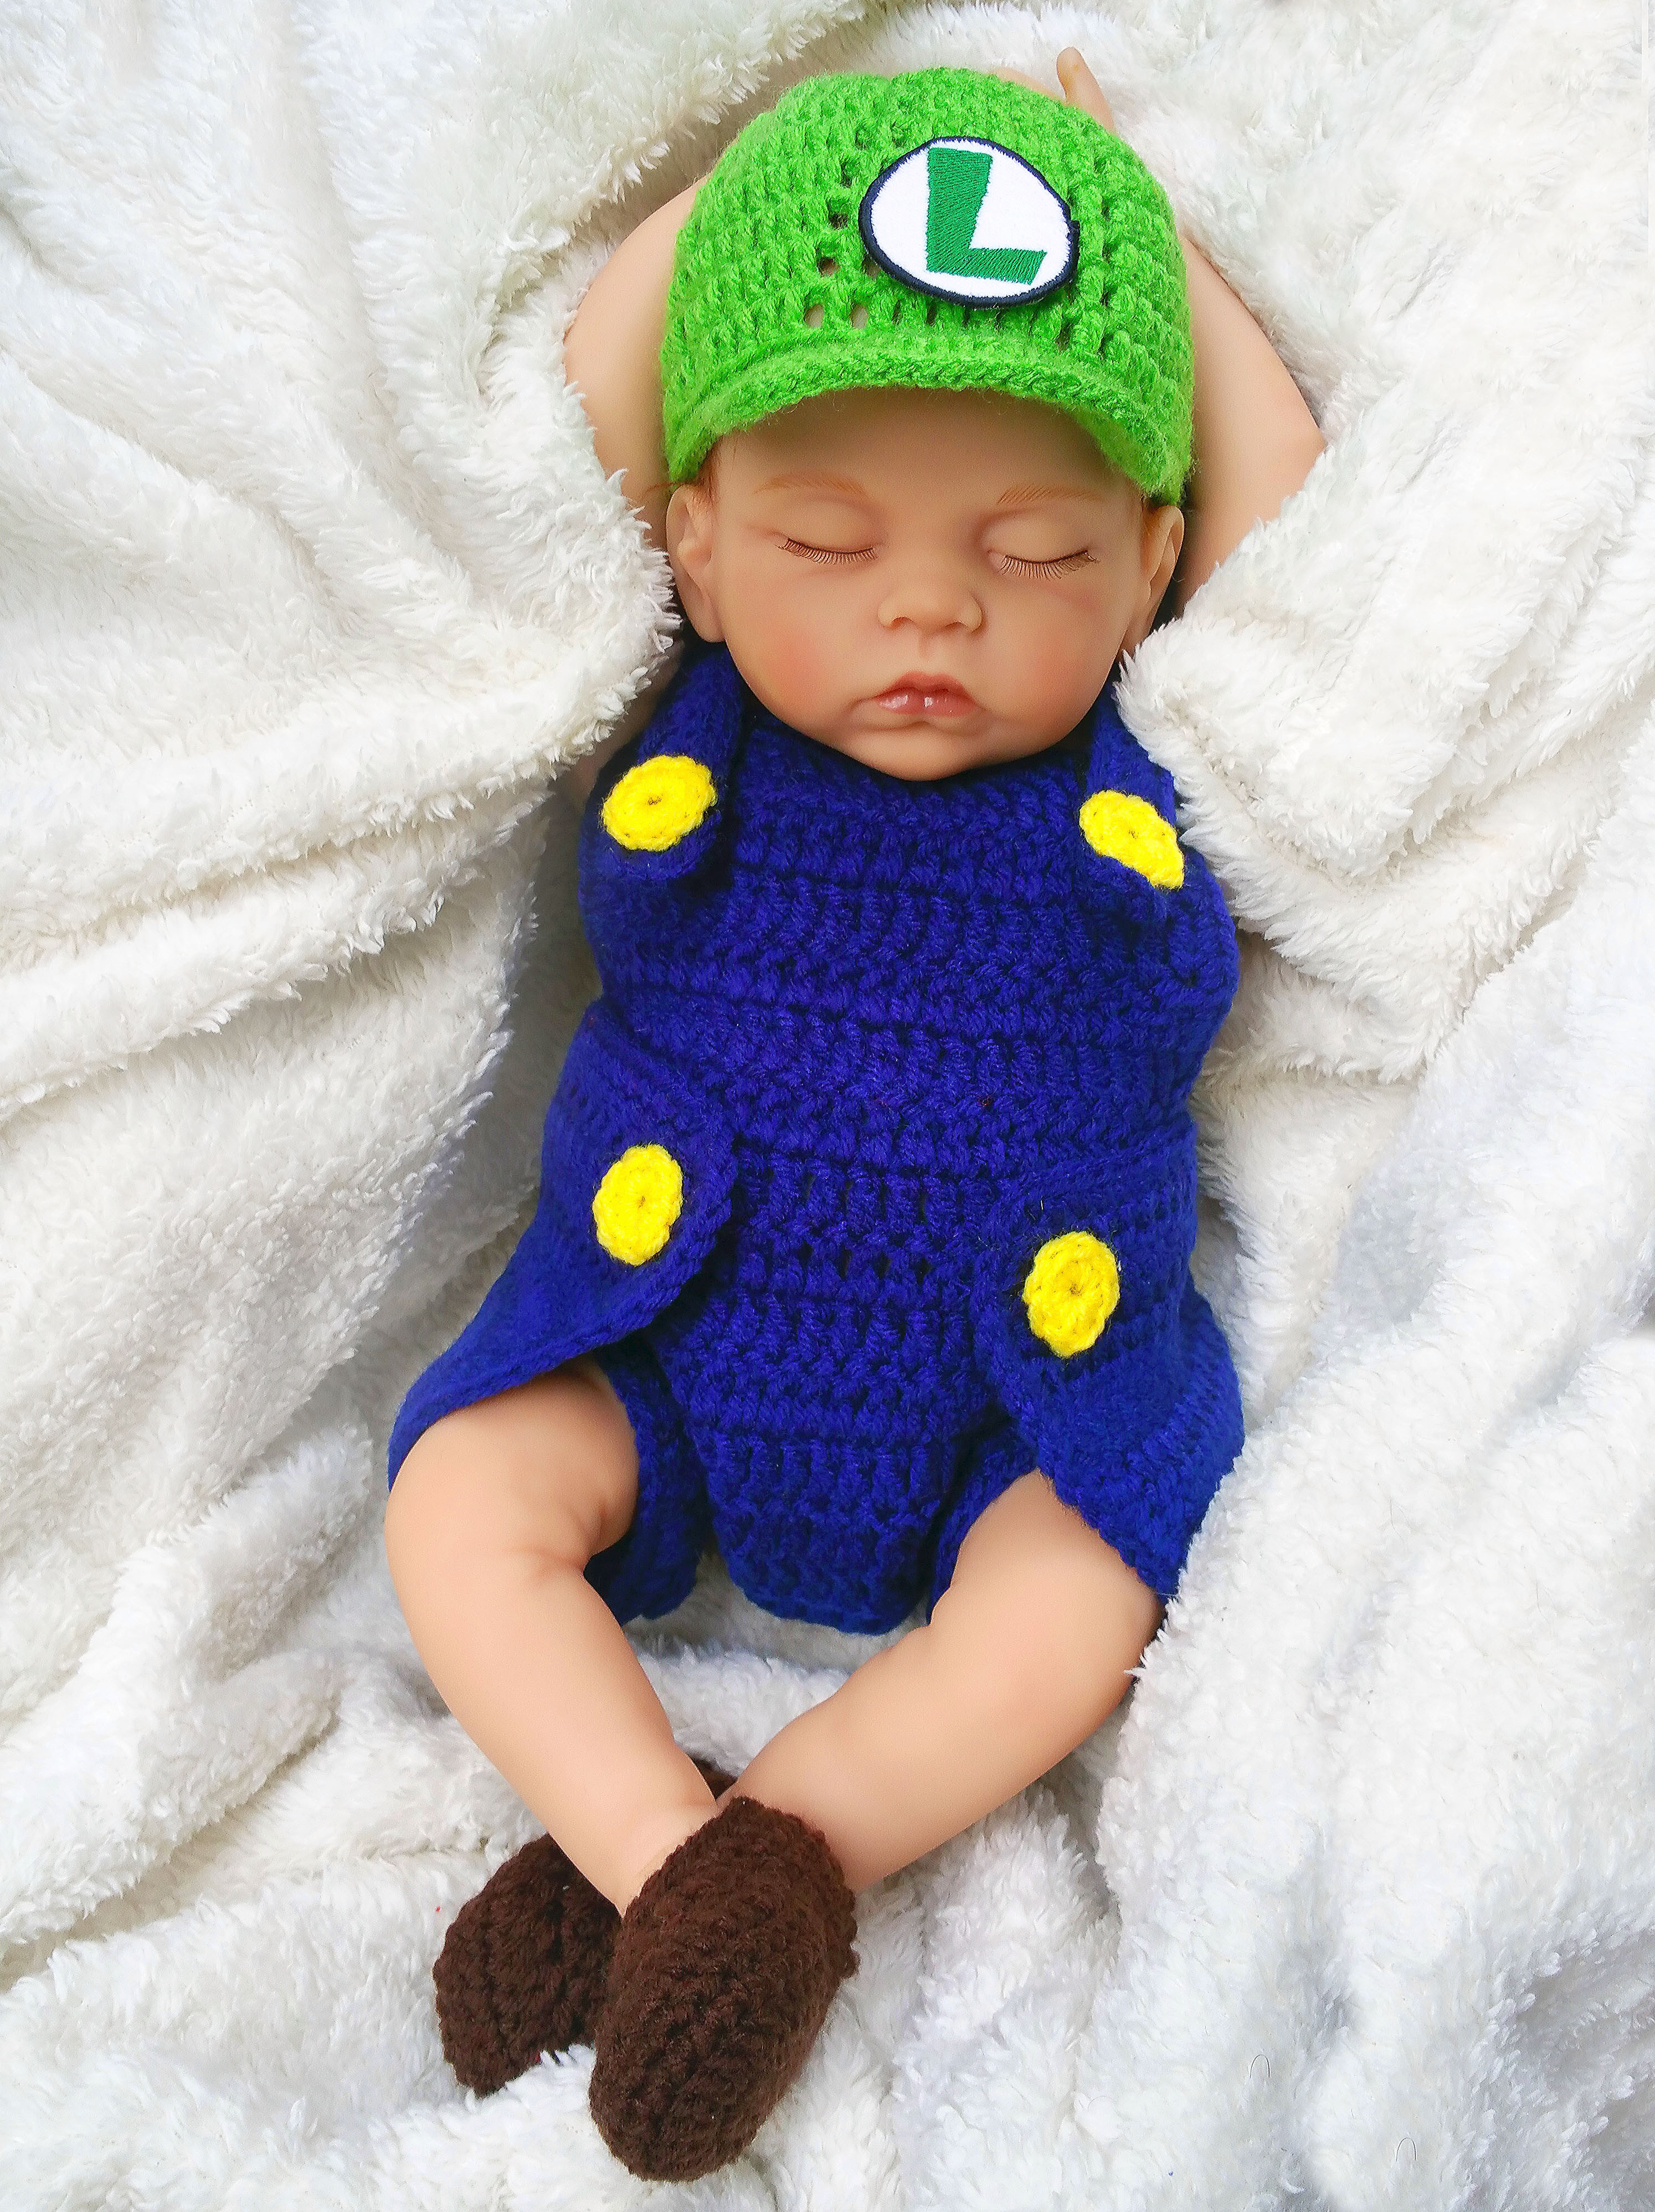 Green Plumber Brother Baby Prop Baby Crochet Outfit